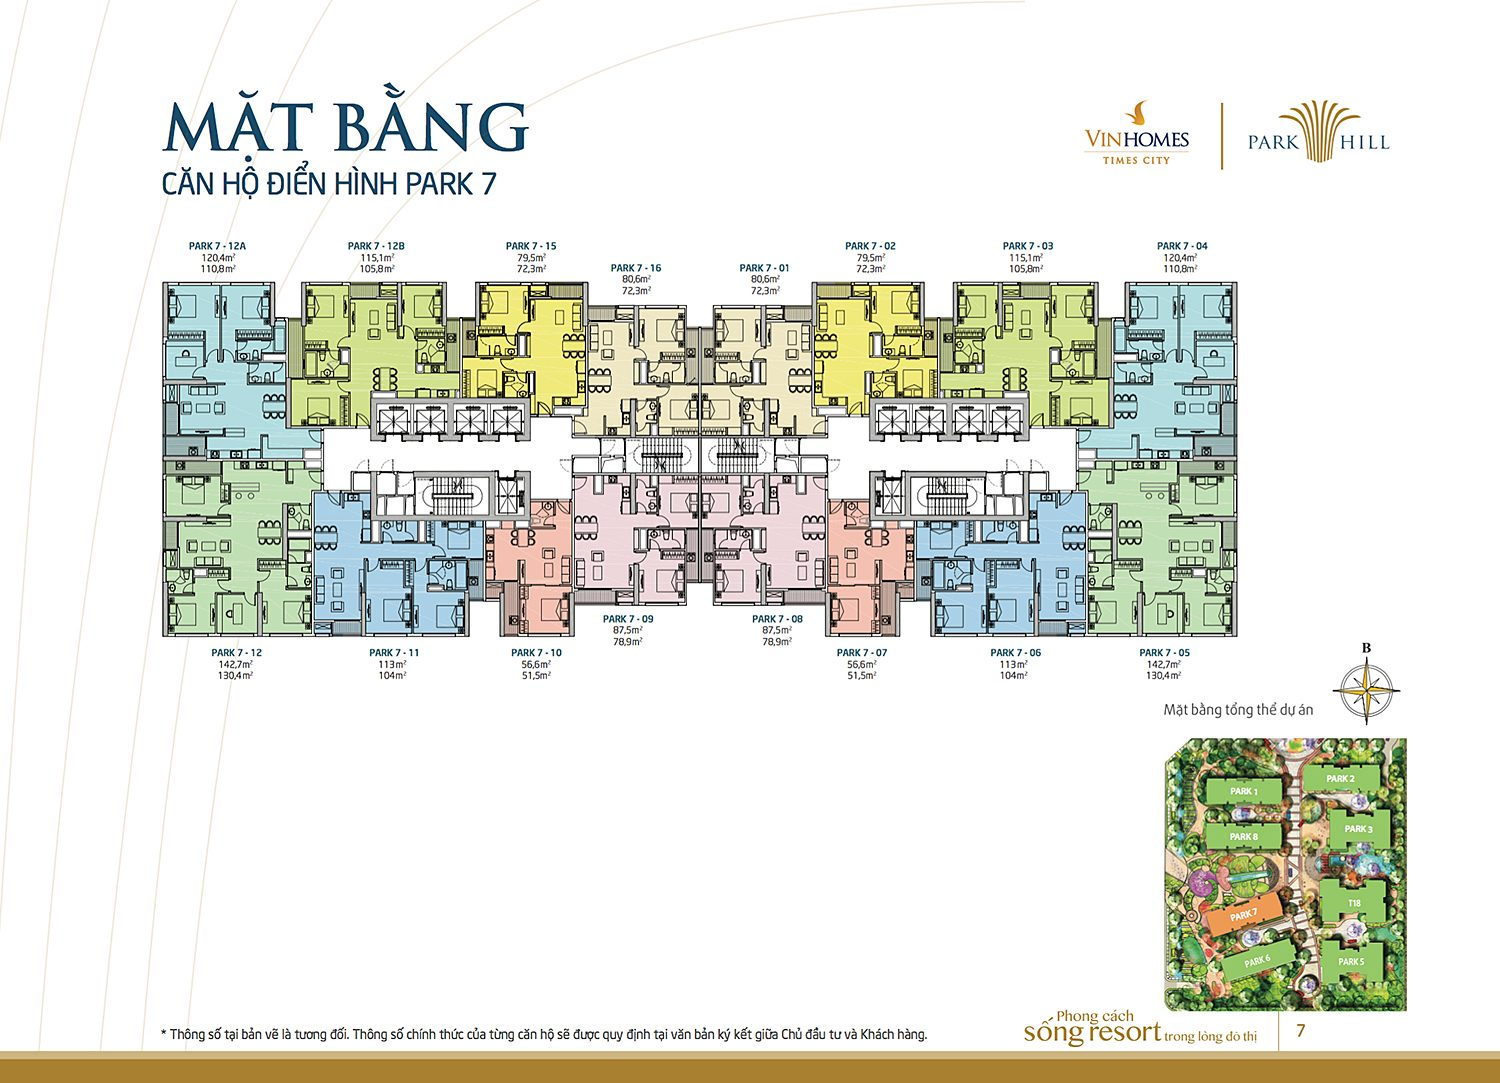 Mat bang vinhomes times city park hill 7